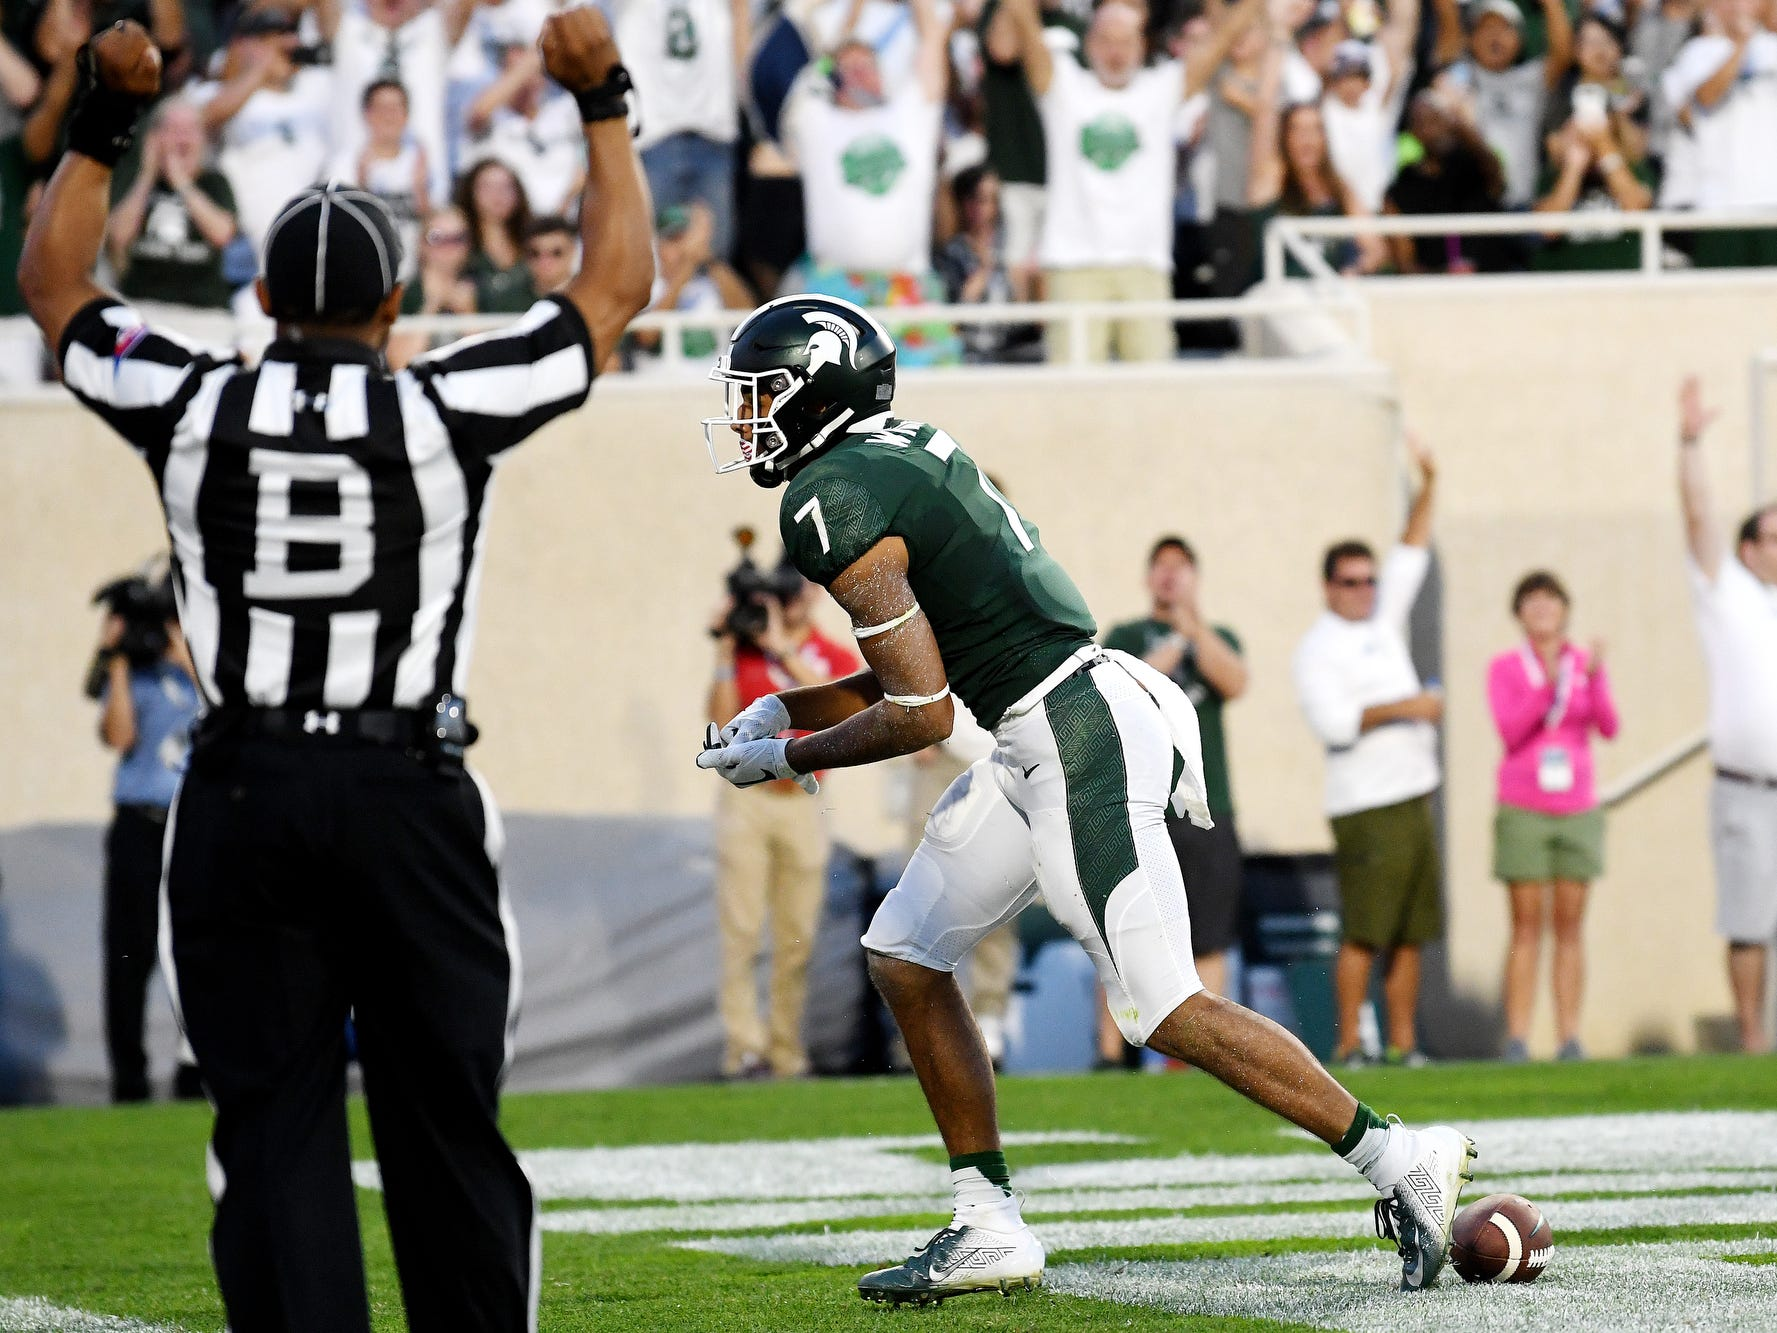 Michigan State's Cody White celebrates a touchdown during the second quarter on Friday, Aug. 31, 2018, at Spartan Stadium in East Lansing.